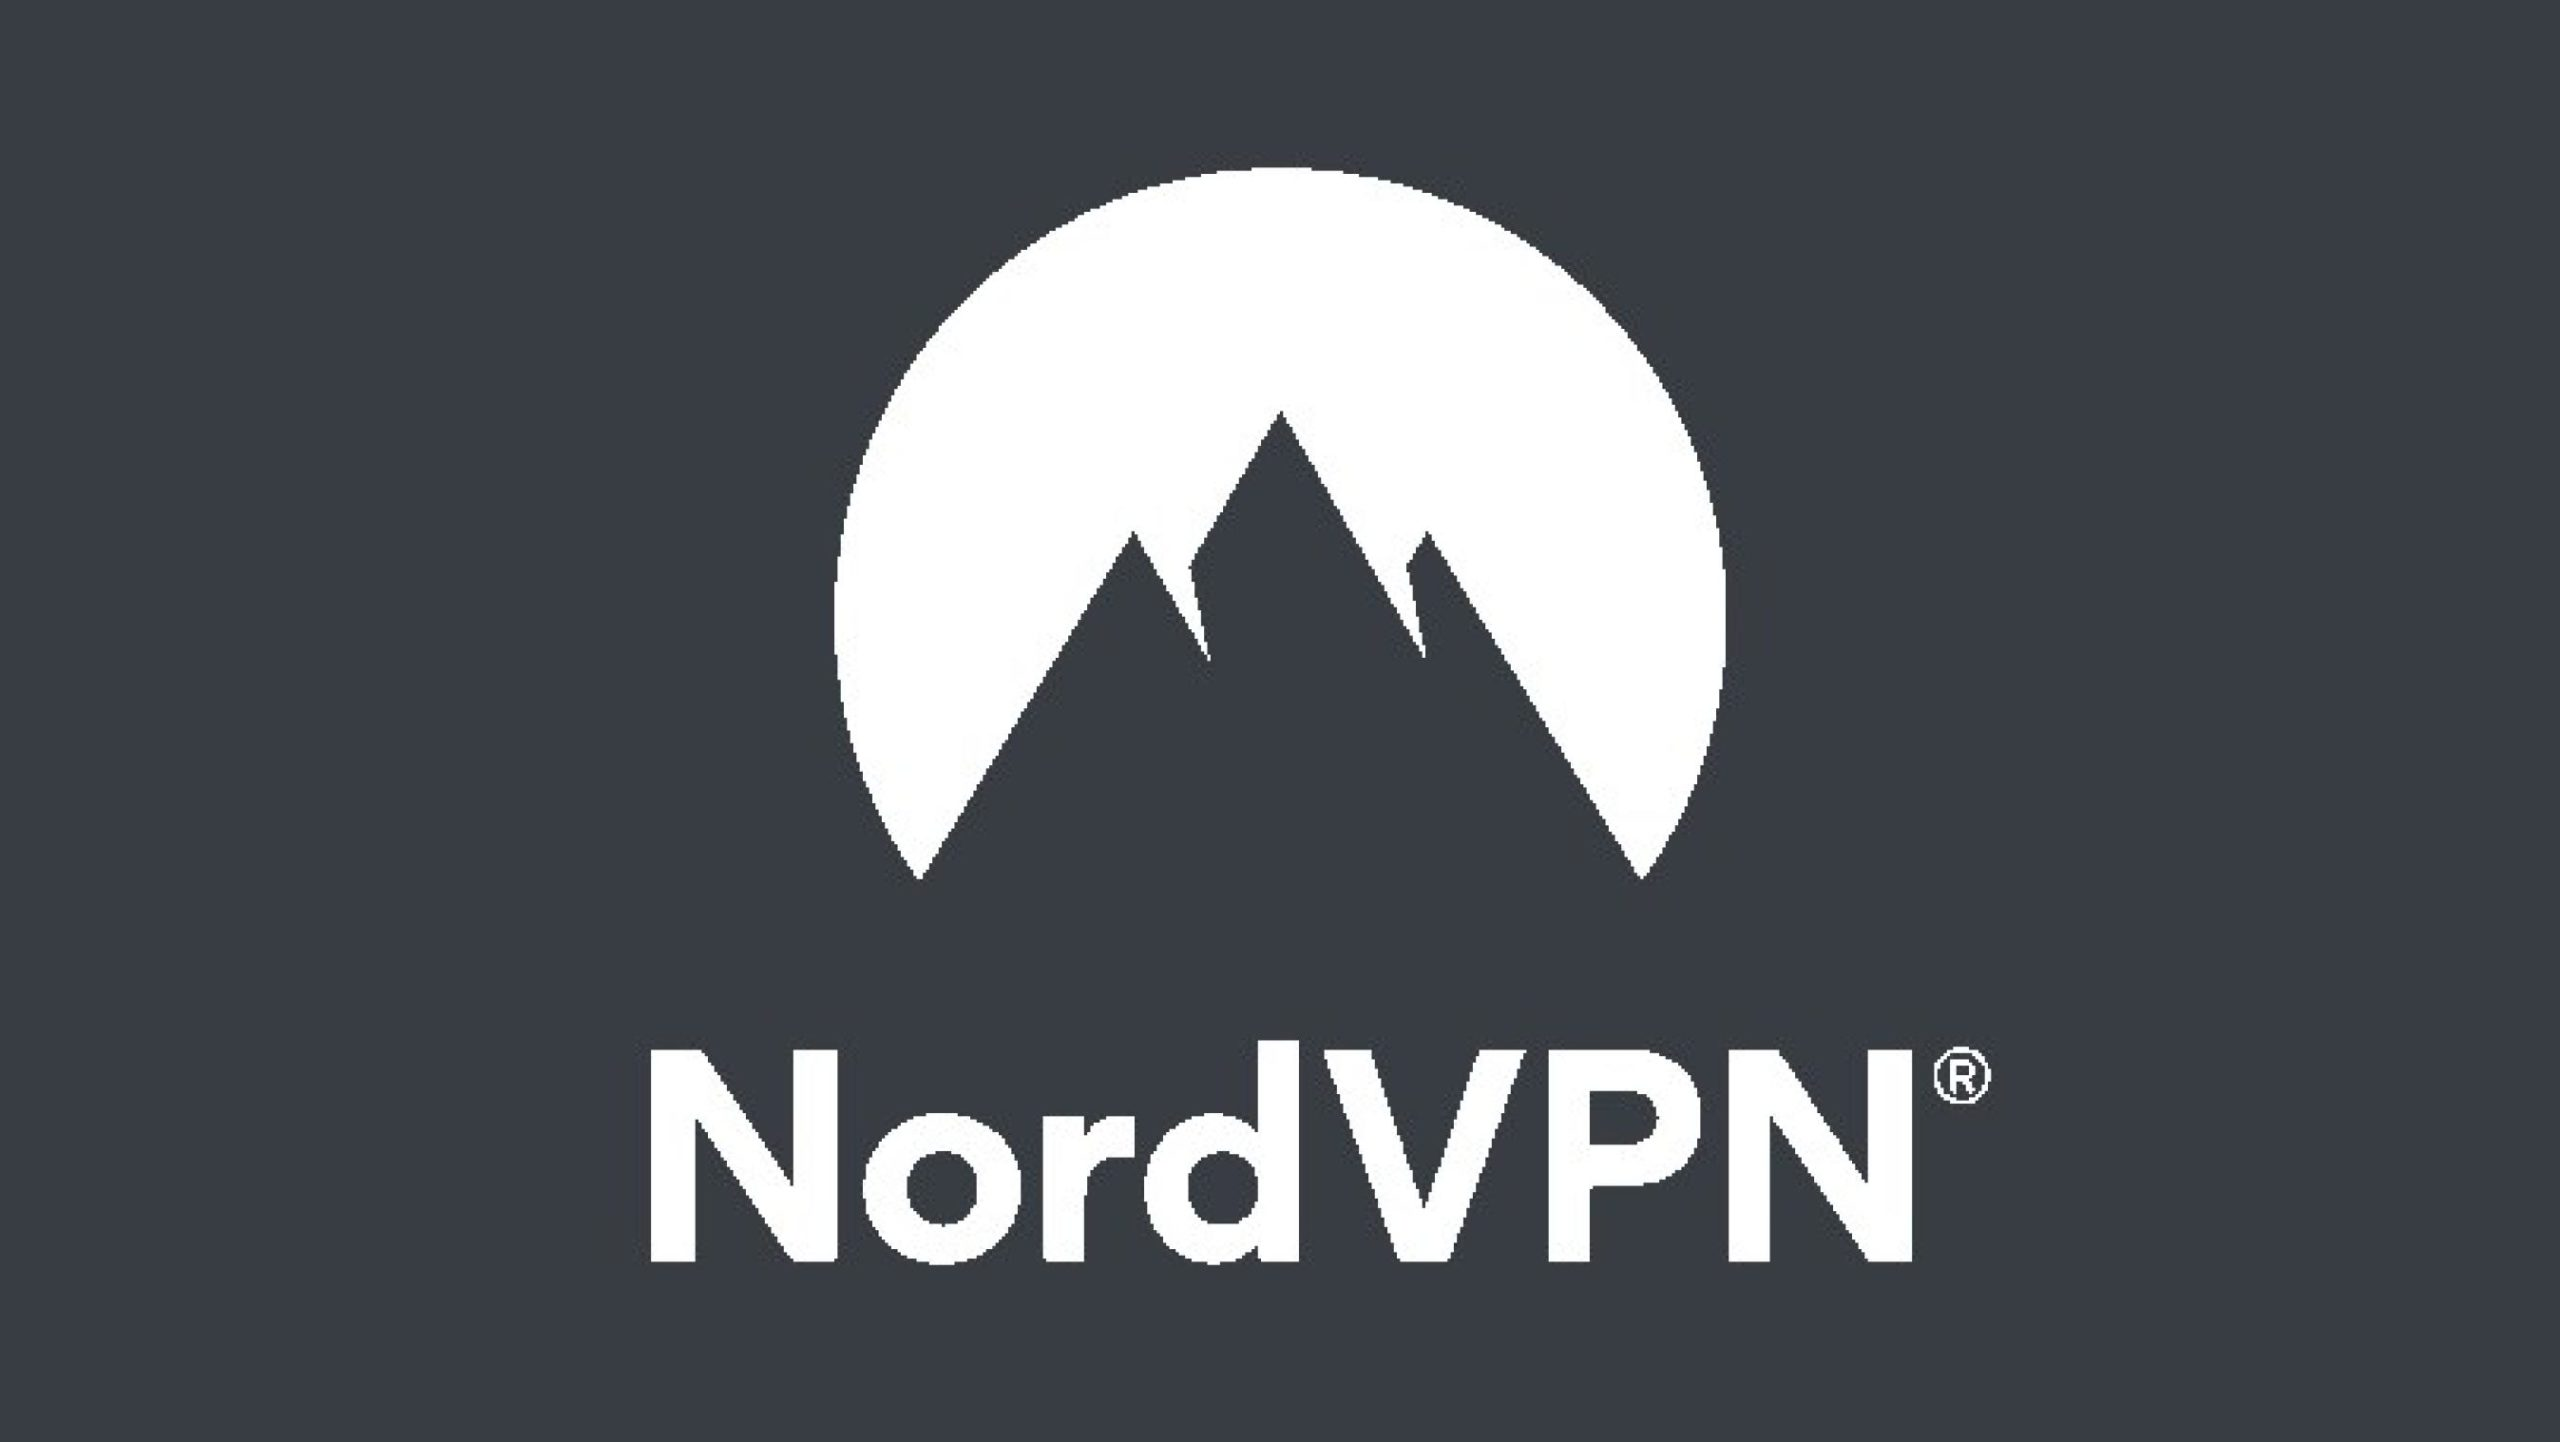 nordvpn for channel 4